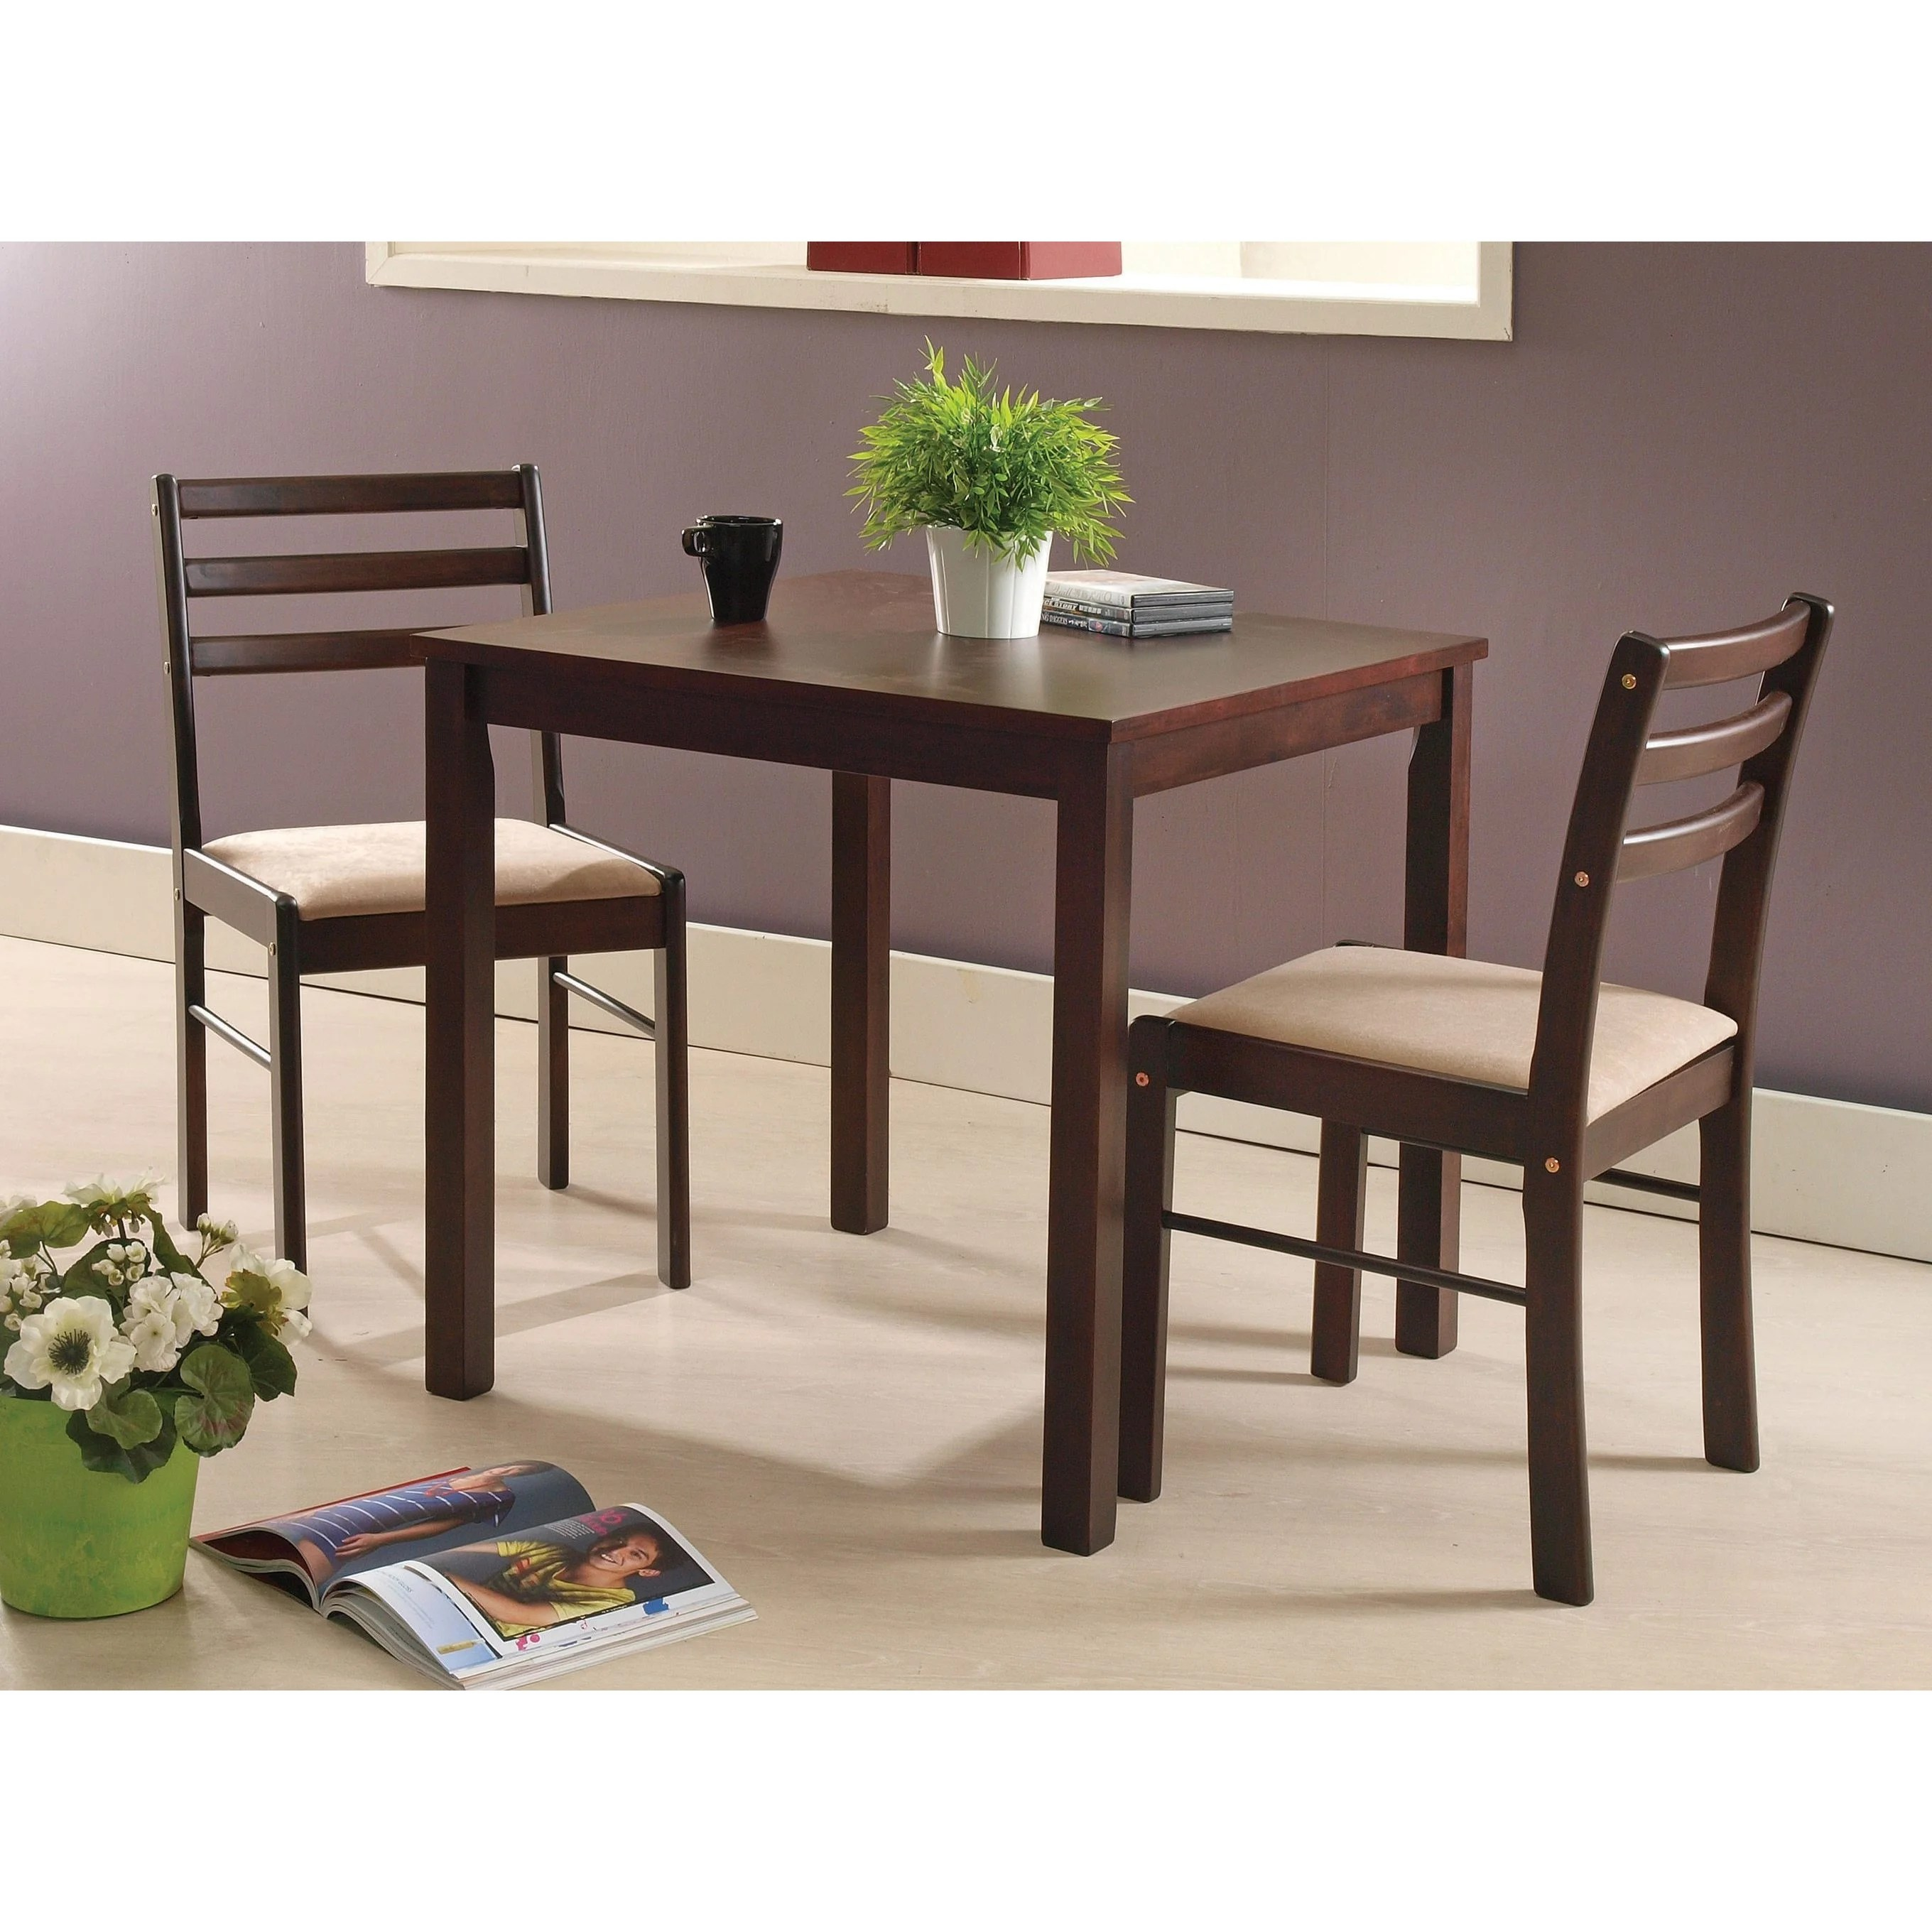 Table With Two Chairs Details About Dining Room Set Espresso Wood 3 Piece Dinette Table Two Chairs Brown Fabric